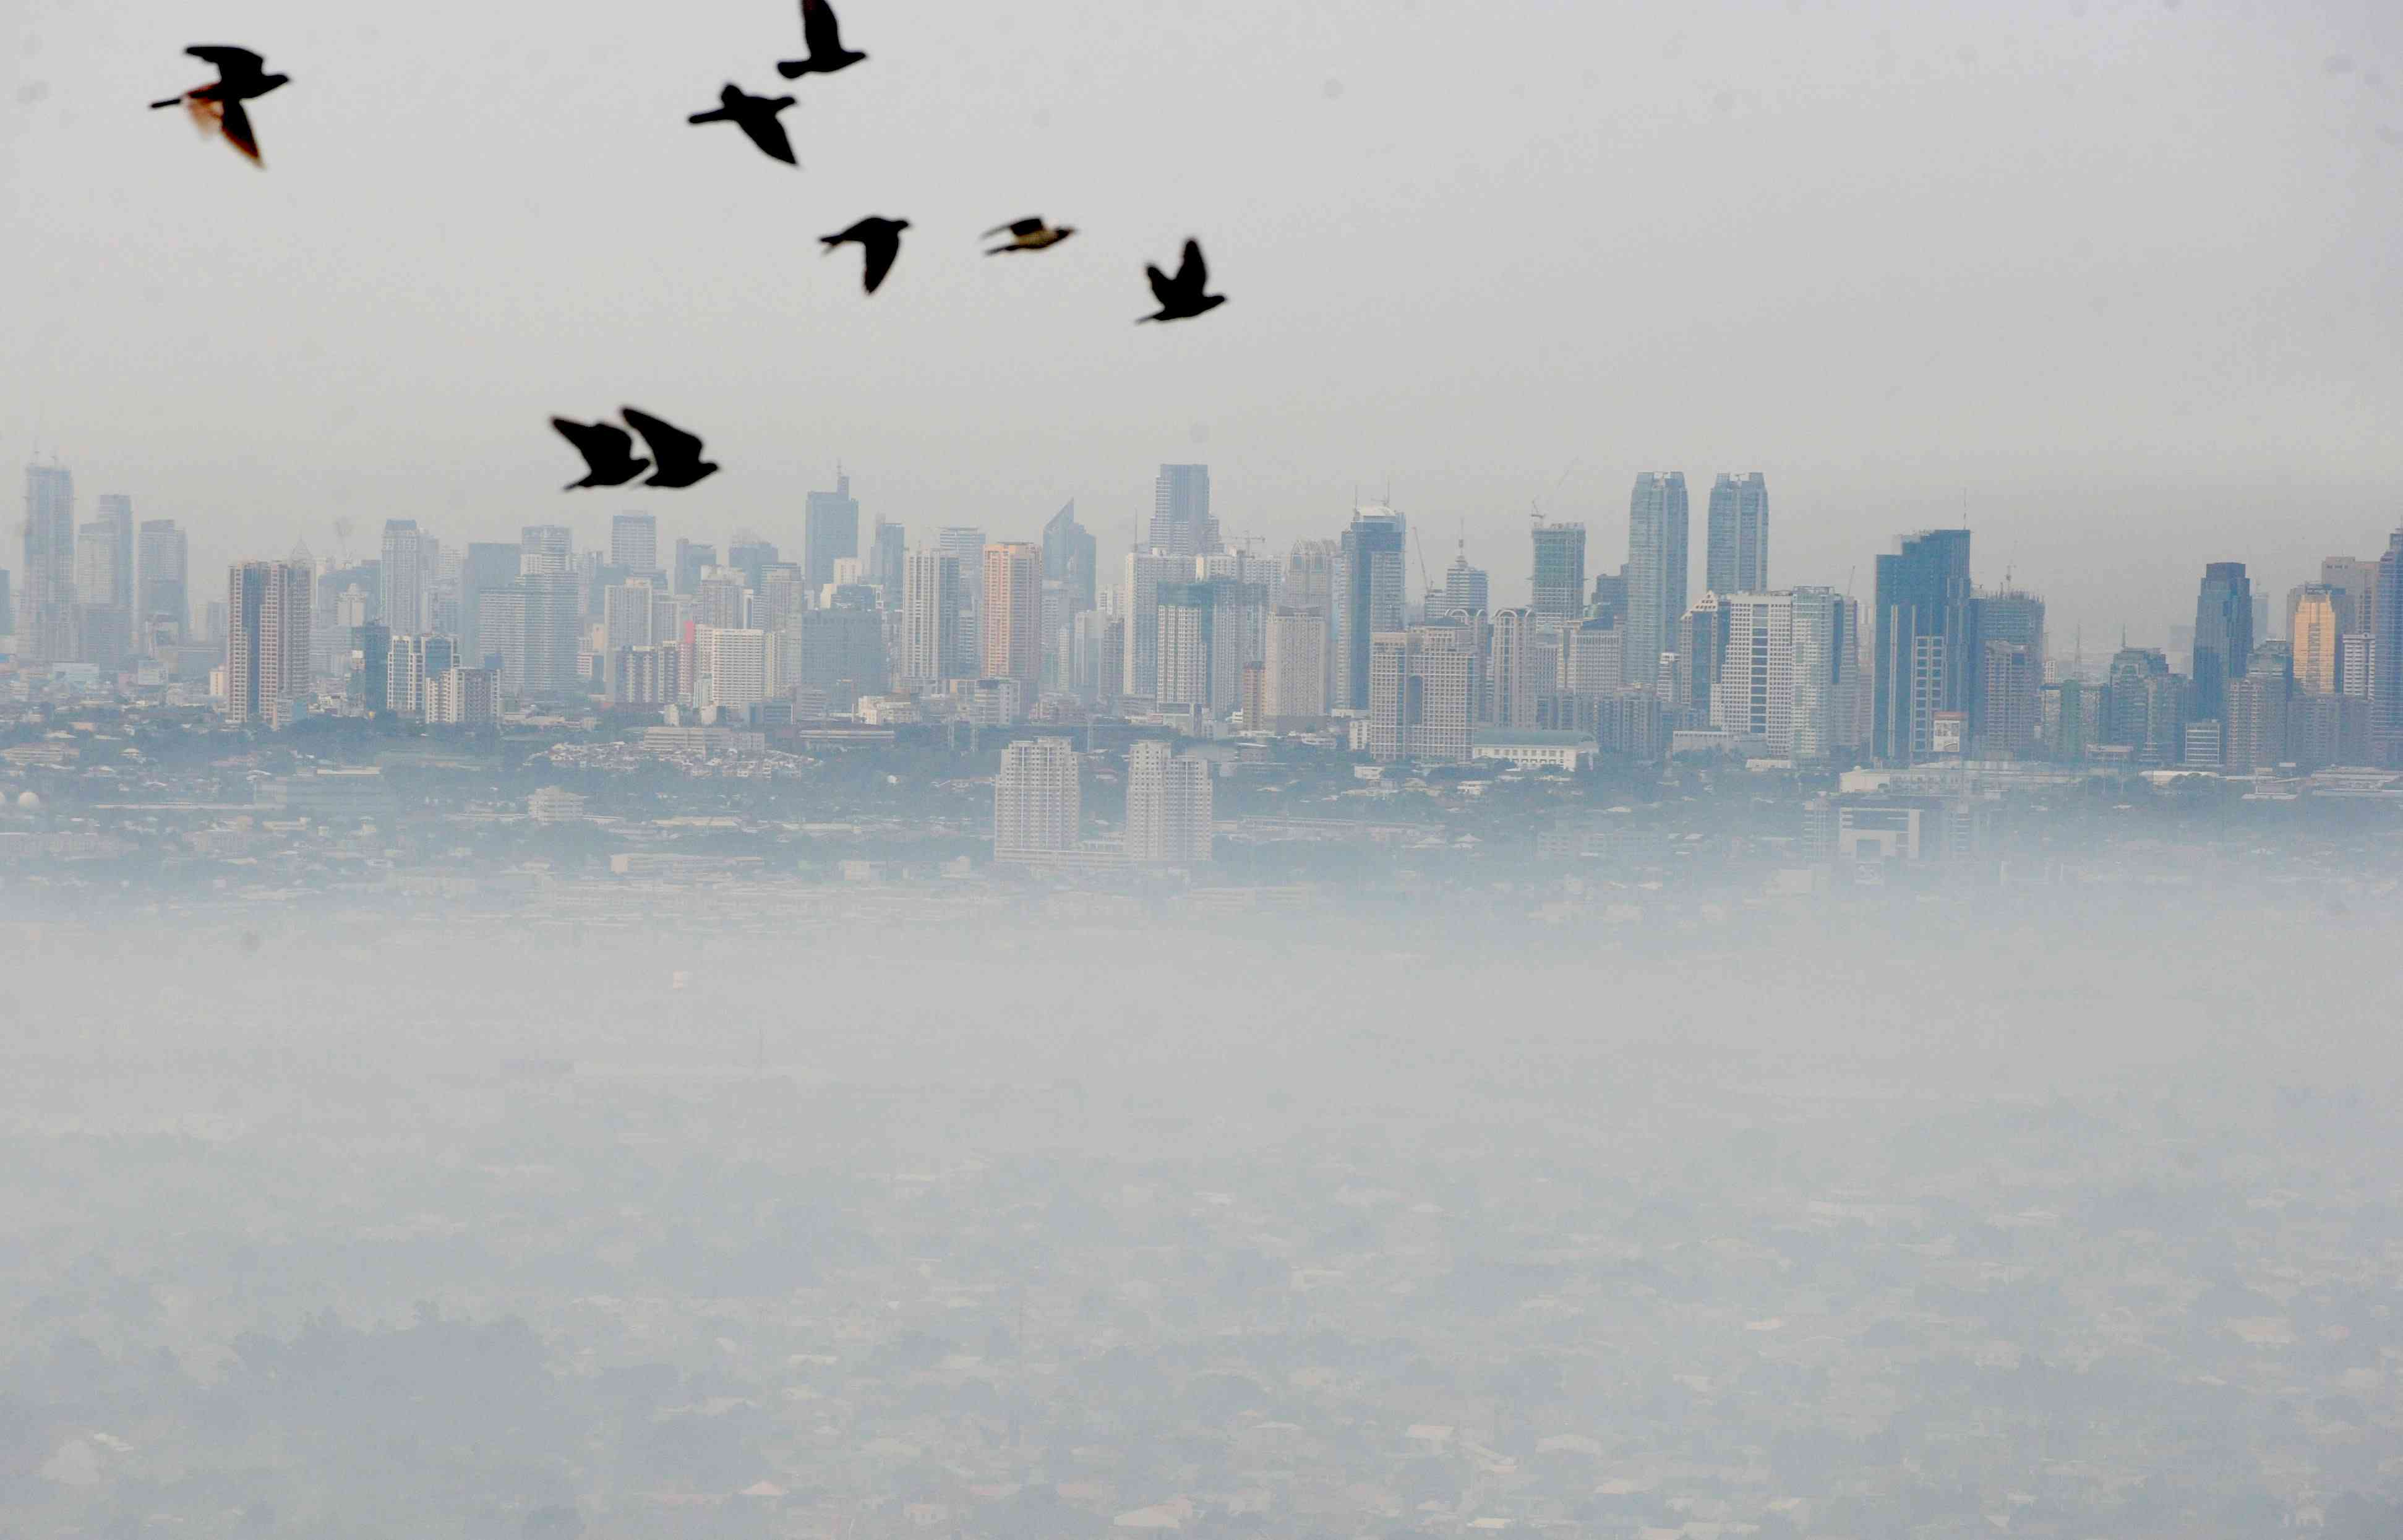 A thick blanket of smog covers Manila